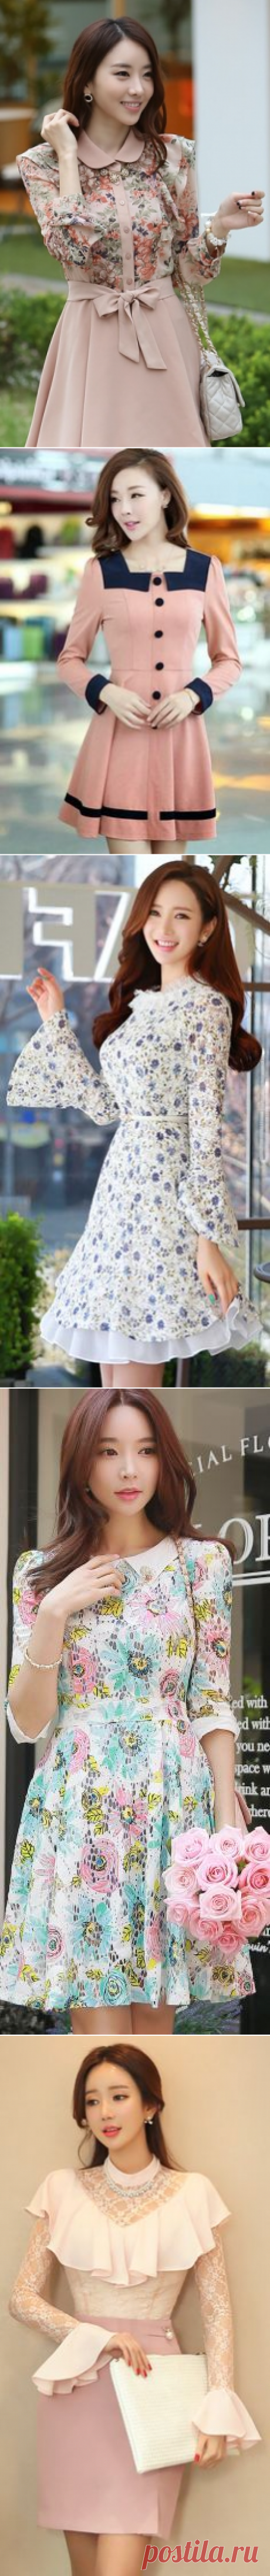 Cute Light Pink Floral Top Dress | Great Outfits | Floral, Lights and Korean fashion